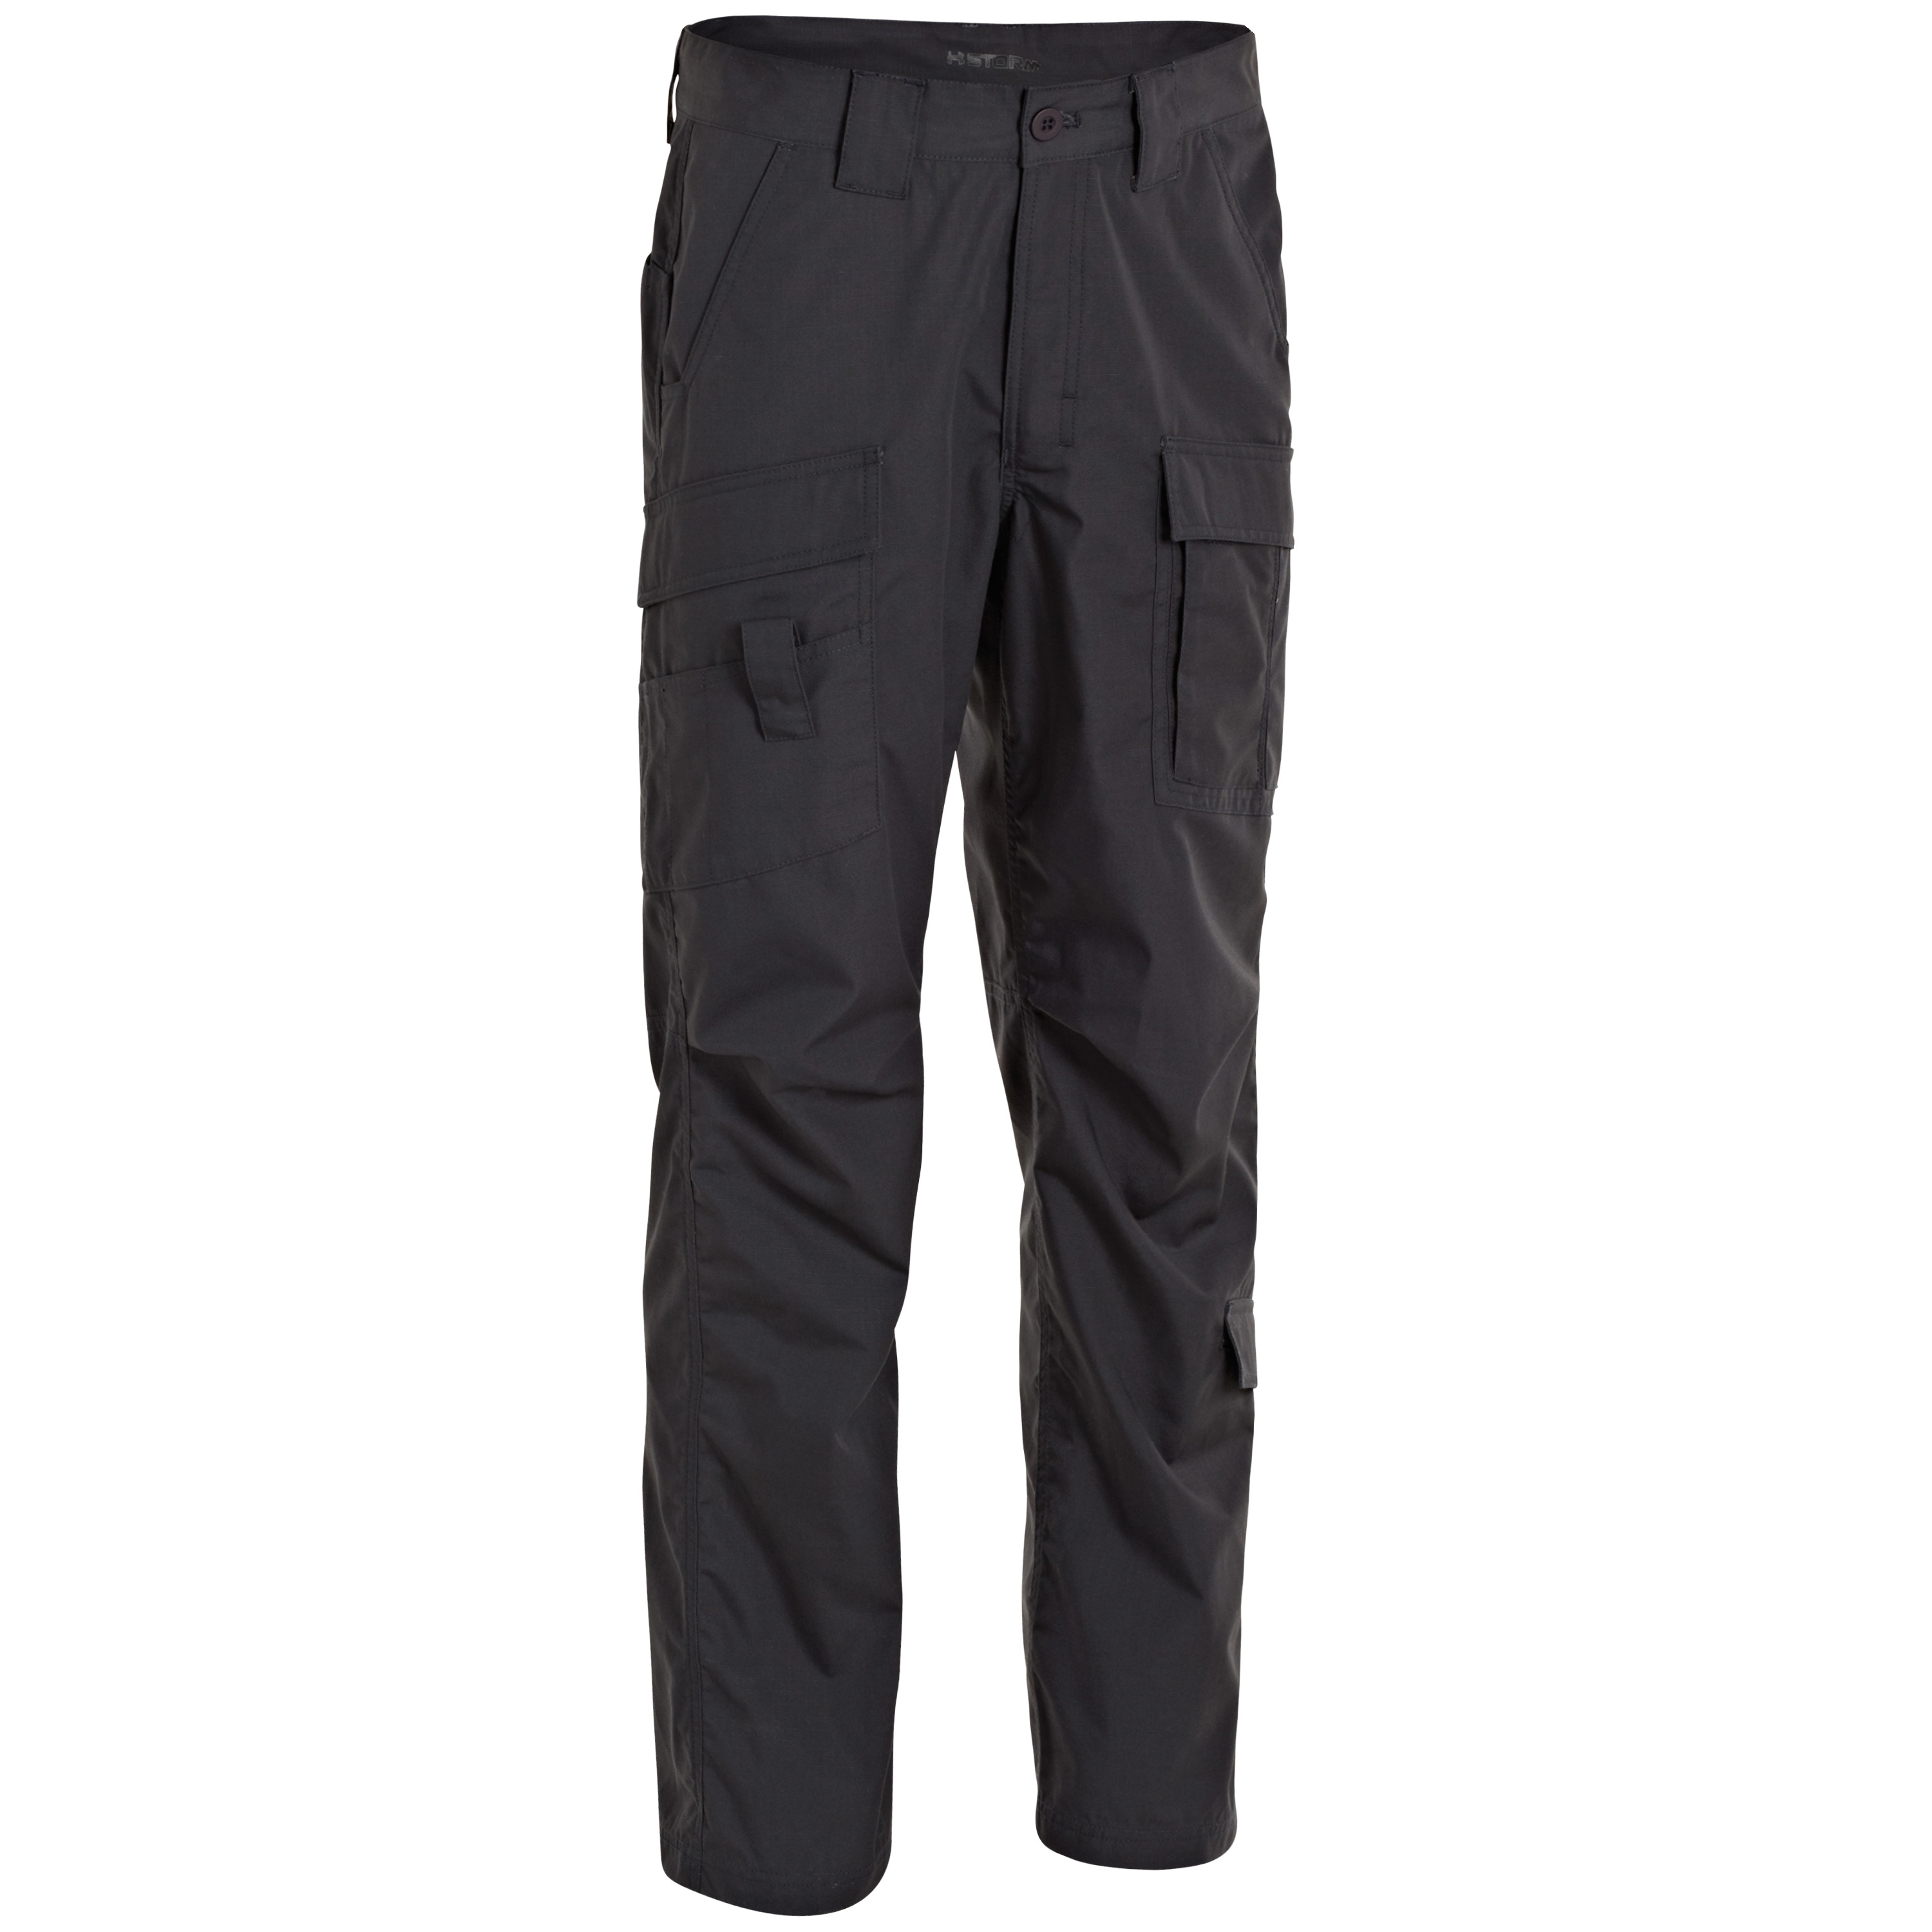 Under Armour Medic Pant navy blue